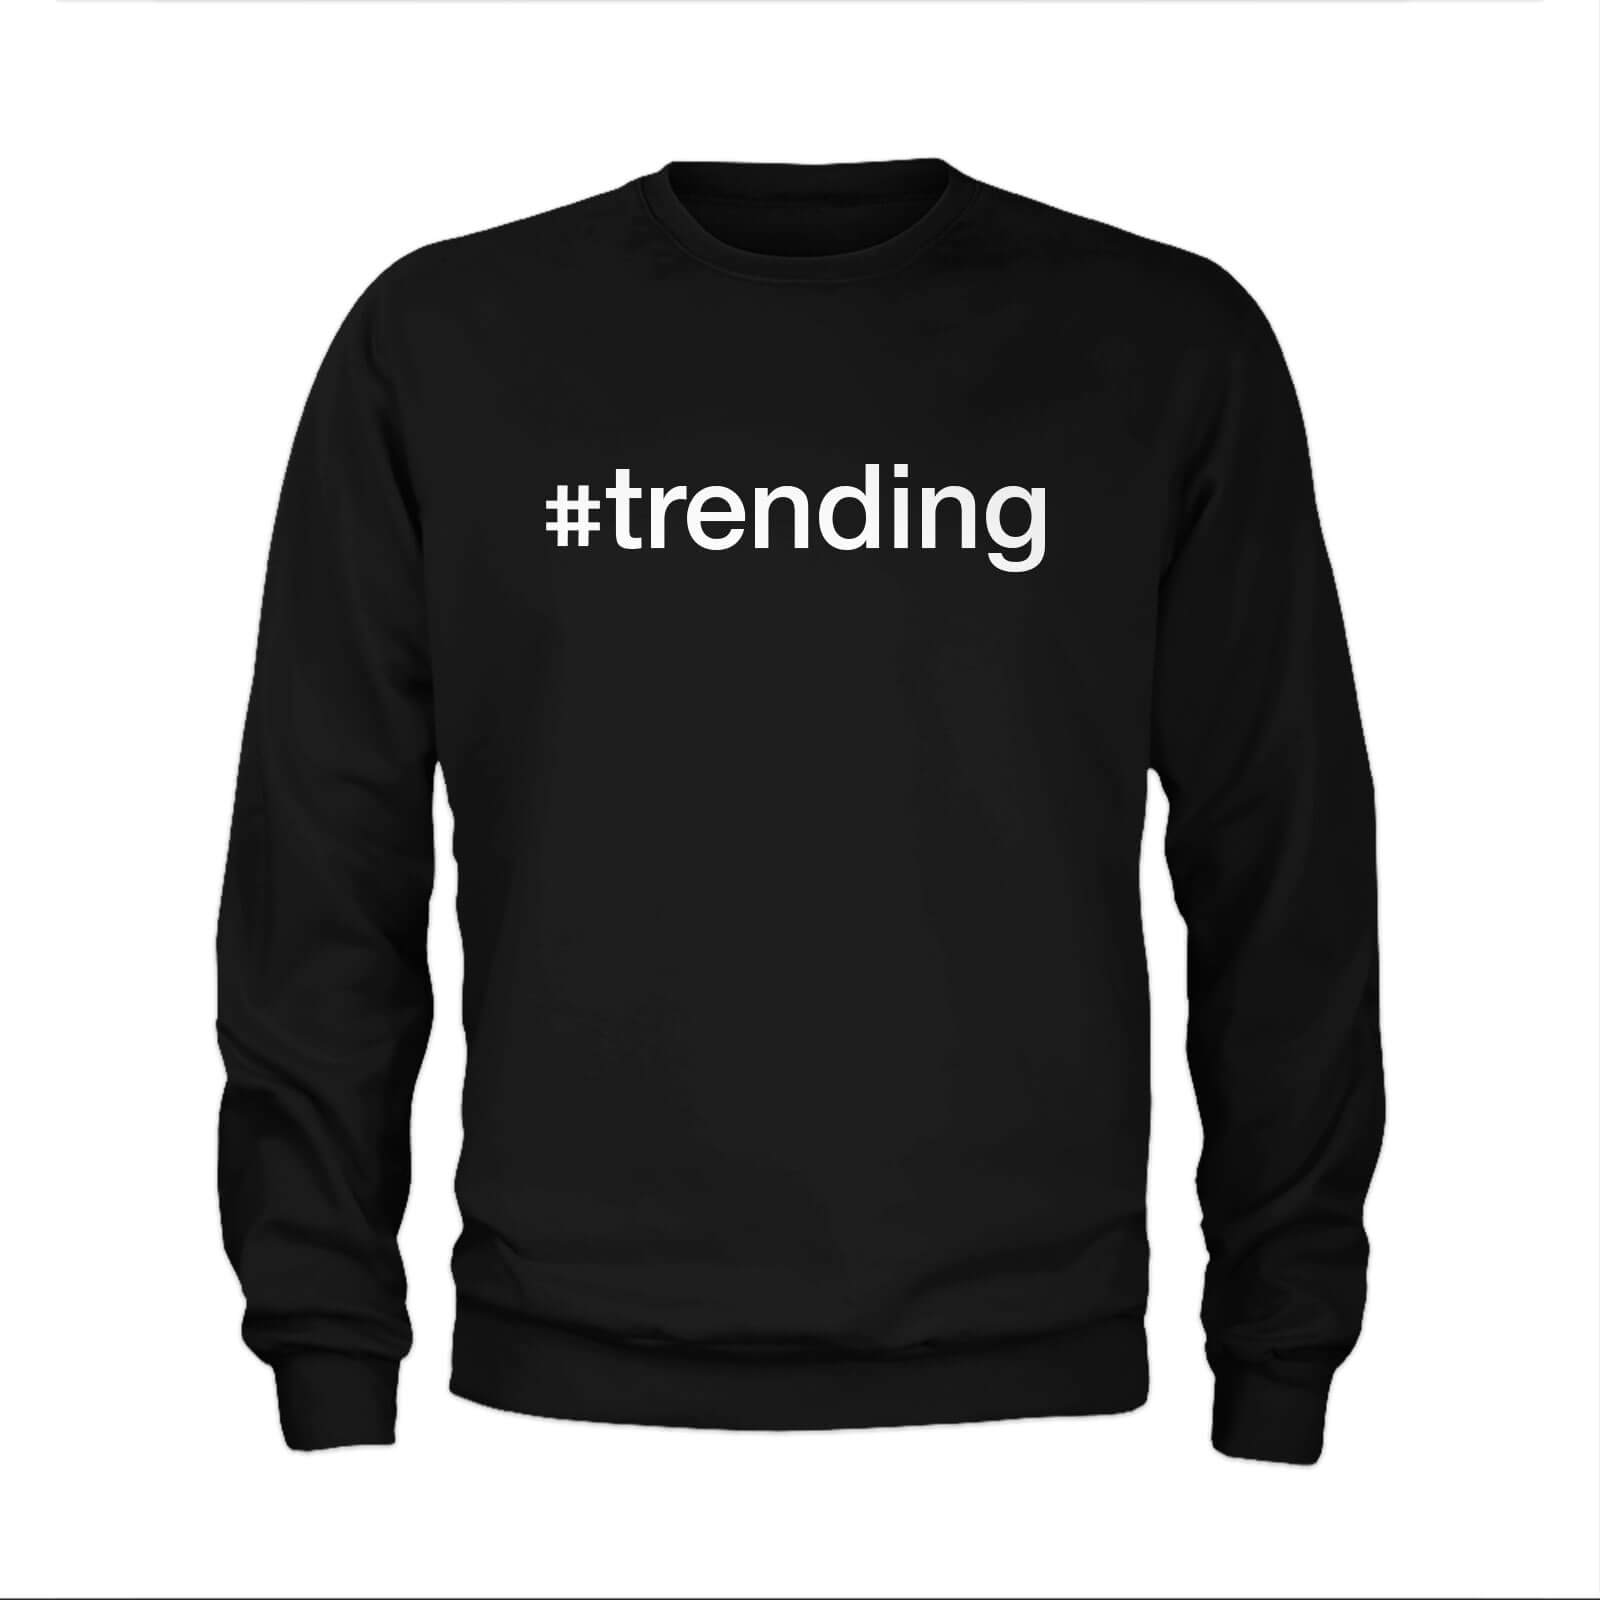 #Trending Slogan Sweatshirt - Black